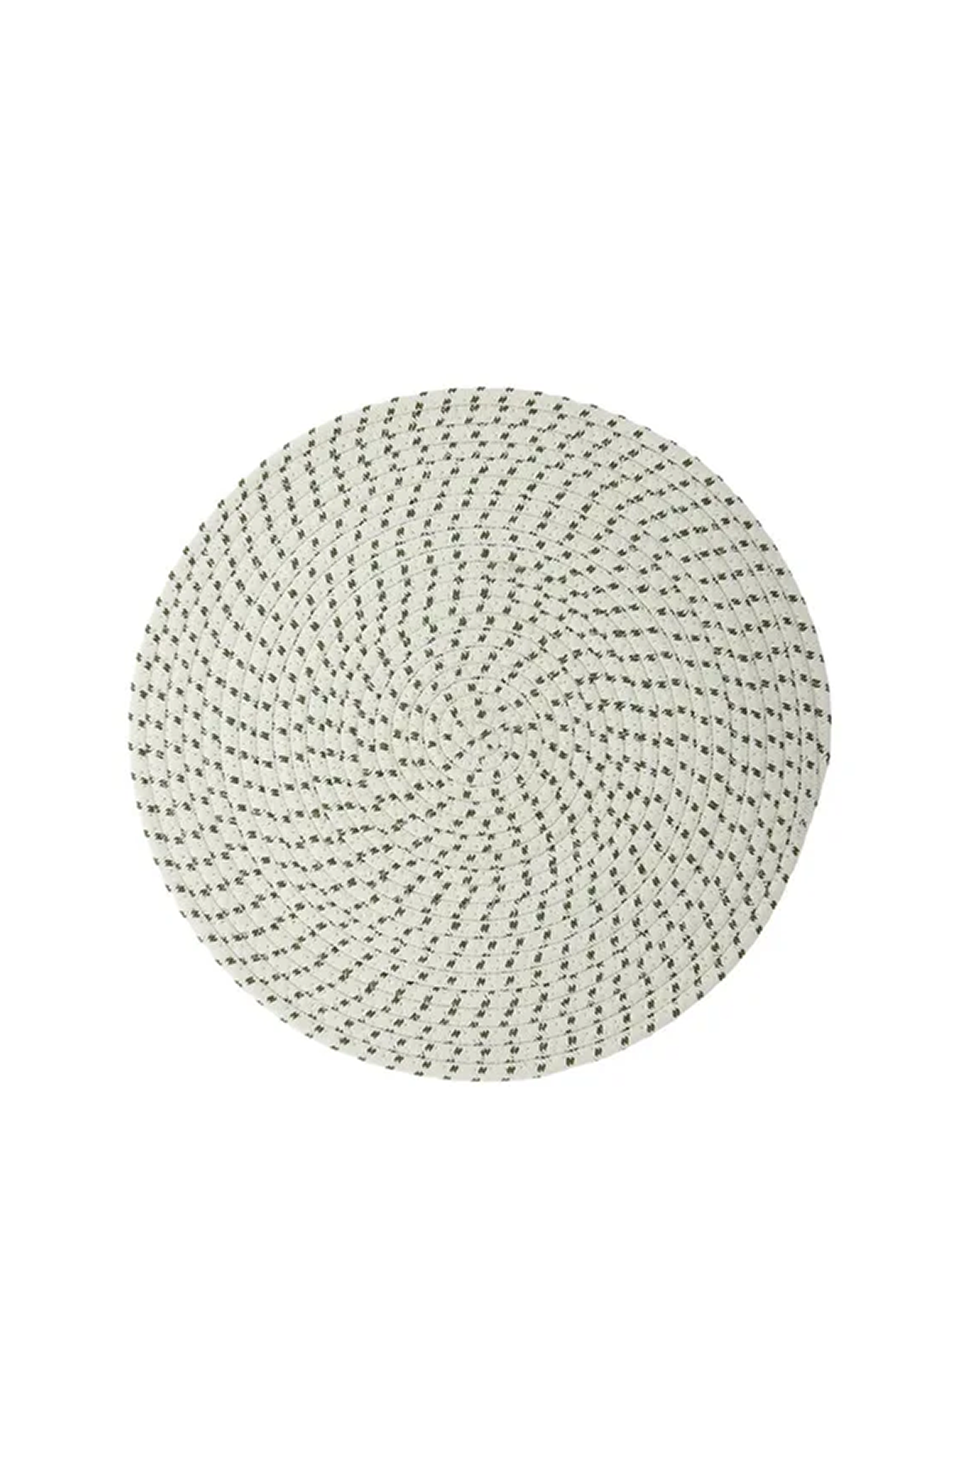 CASA - TESS ROUND PLACEMAT - WHITE & NAVY - Tempted Kensington